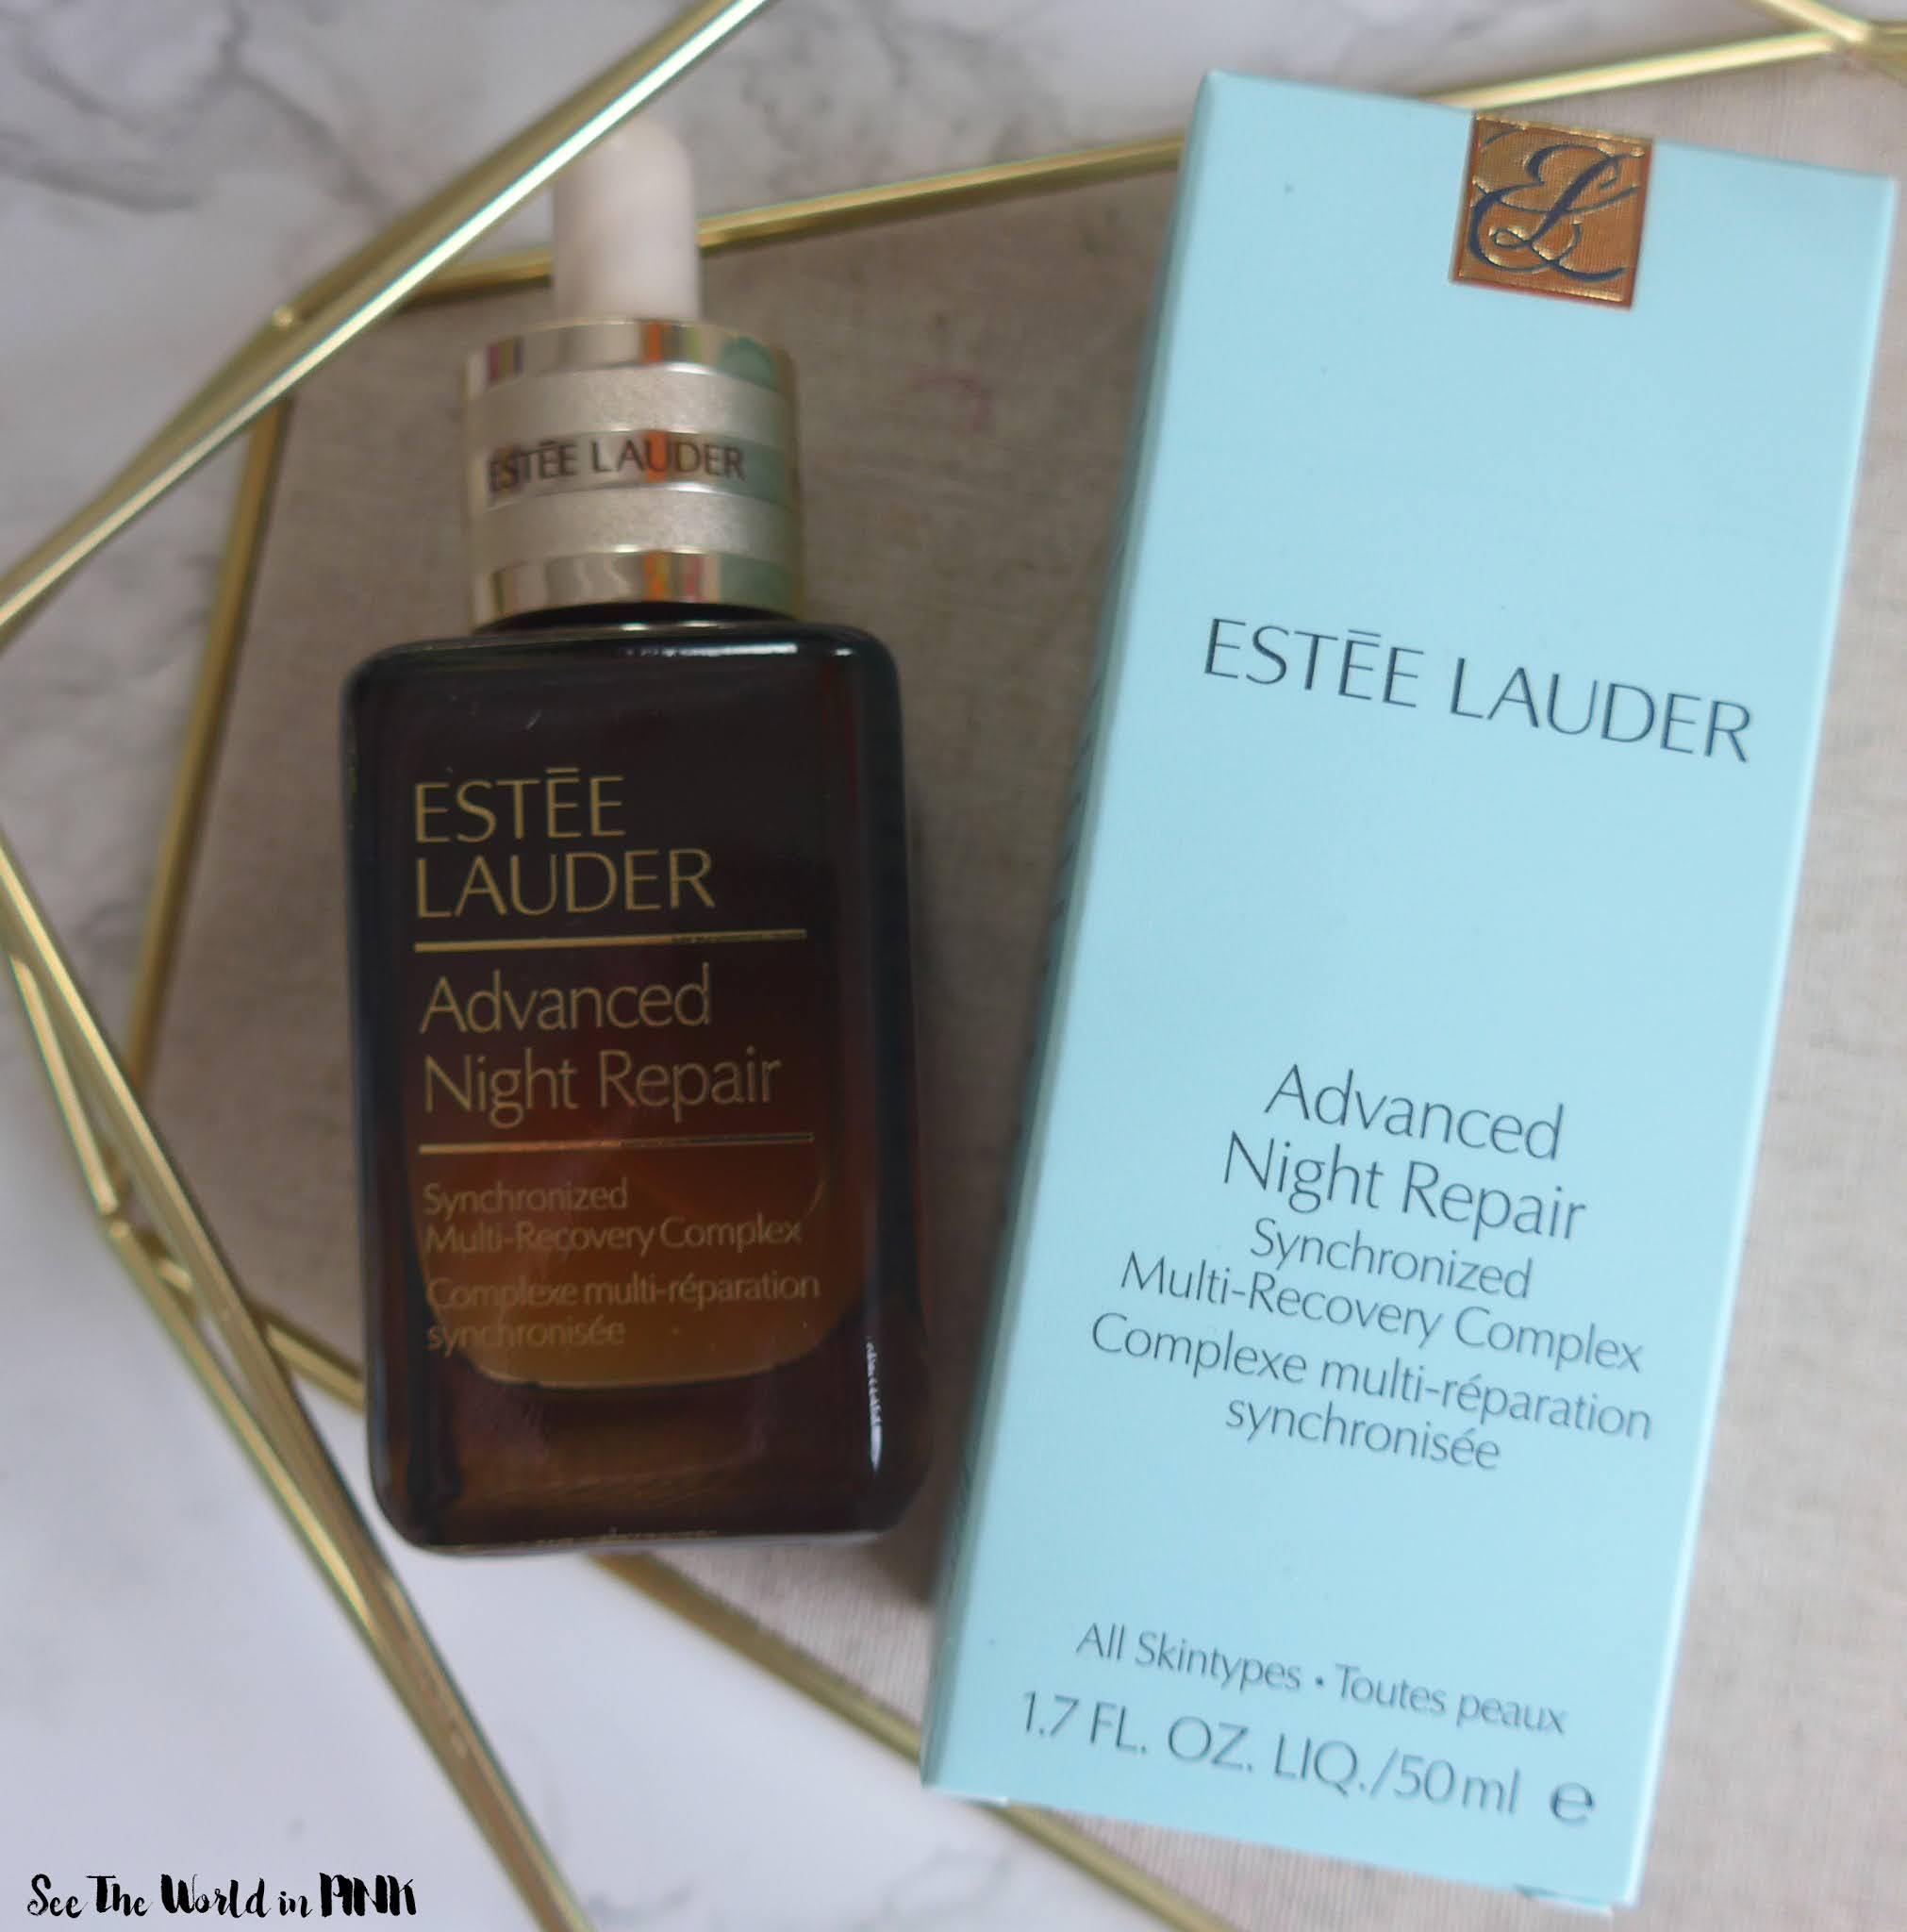 Estee Lauder Advanced Night Repair Synchronized Multi-Recovery Complex Serum & Eye Supercharged Complex